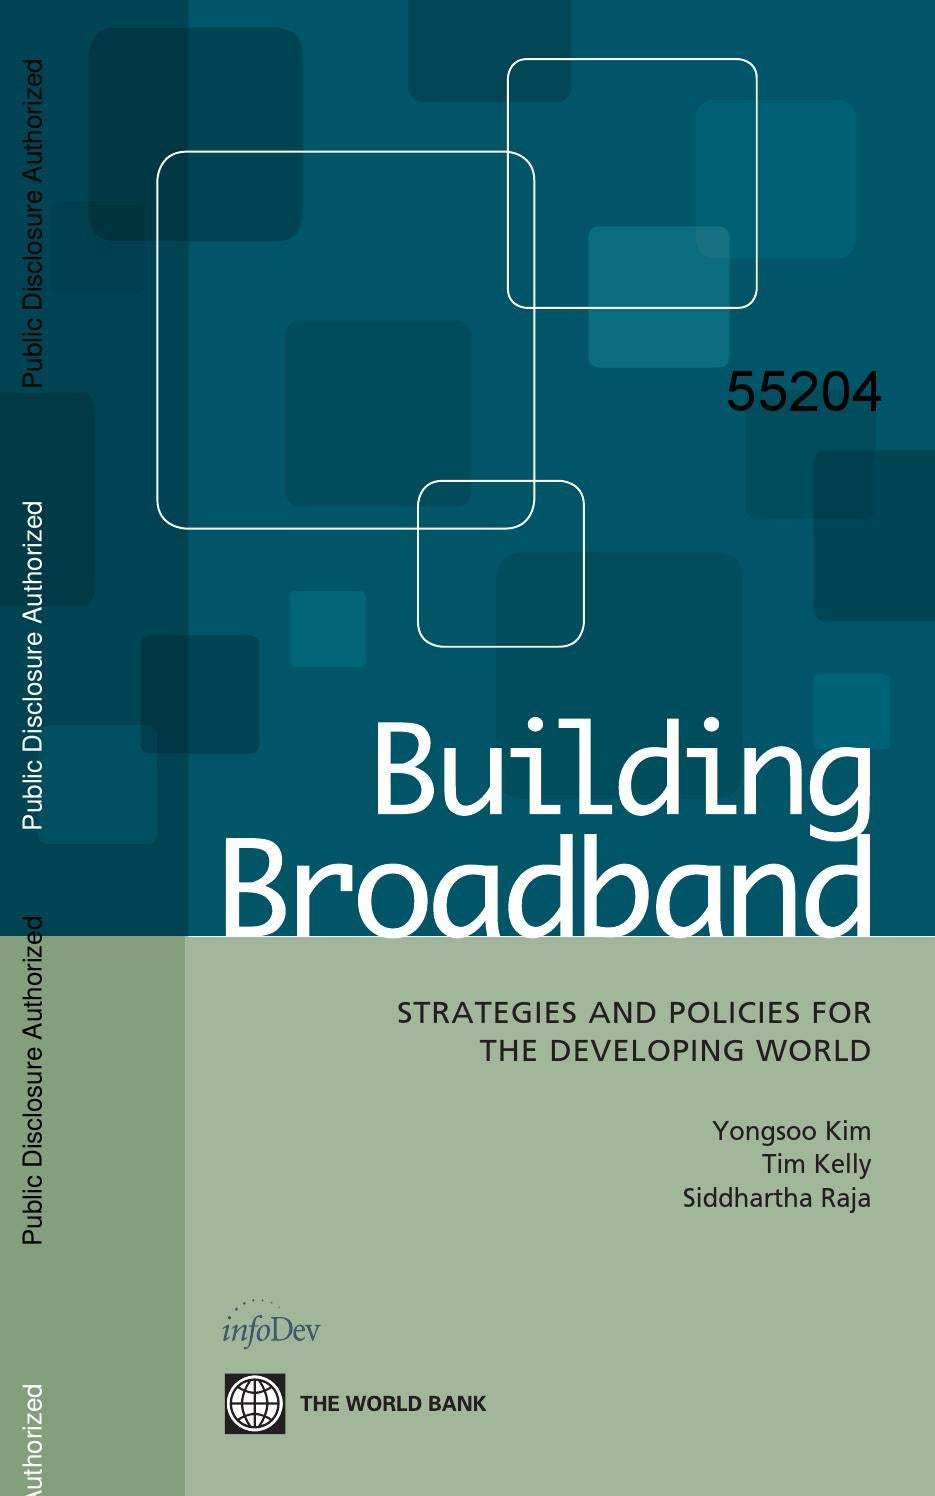 Building Broadband: Strategies and Policies for the